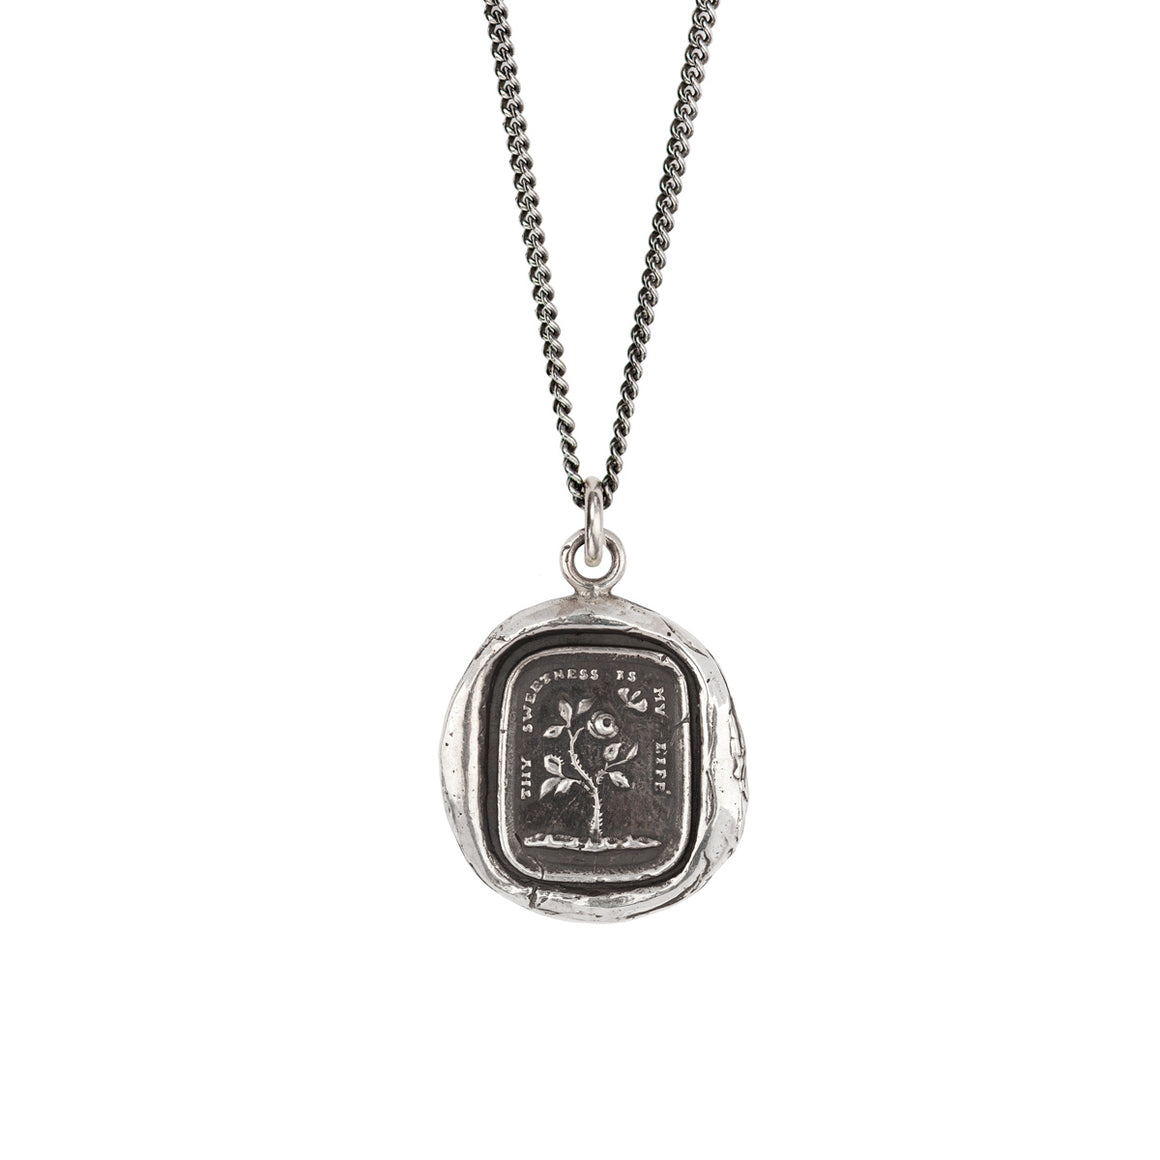 PYRRHA SWEETNESS TALISMAN NECKLACE